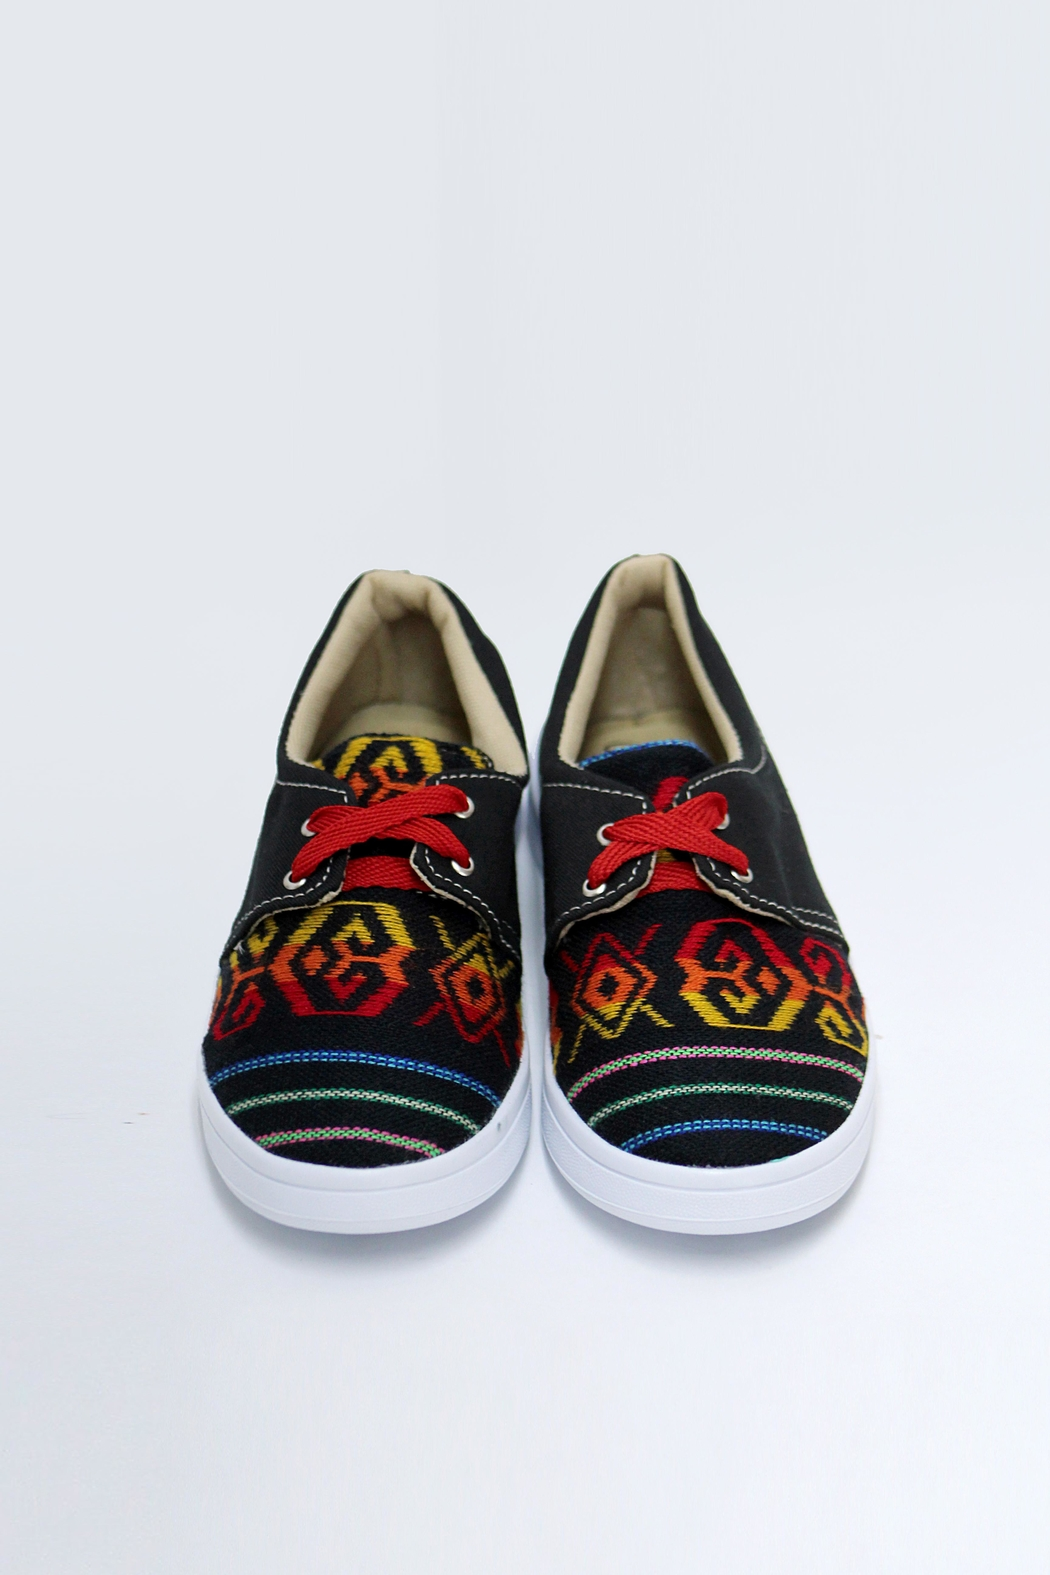 xinknal Black Mexican Sneakers - Back Cropped Image